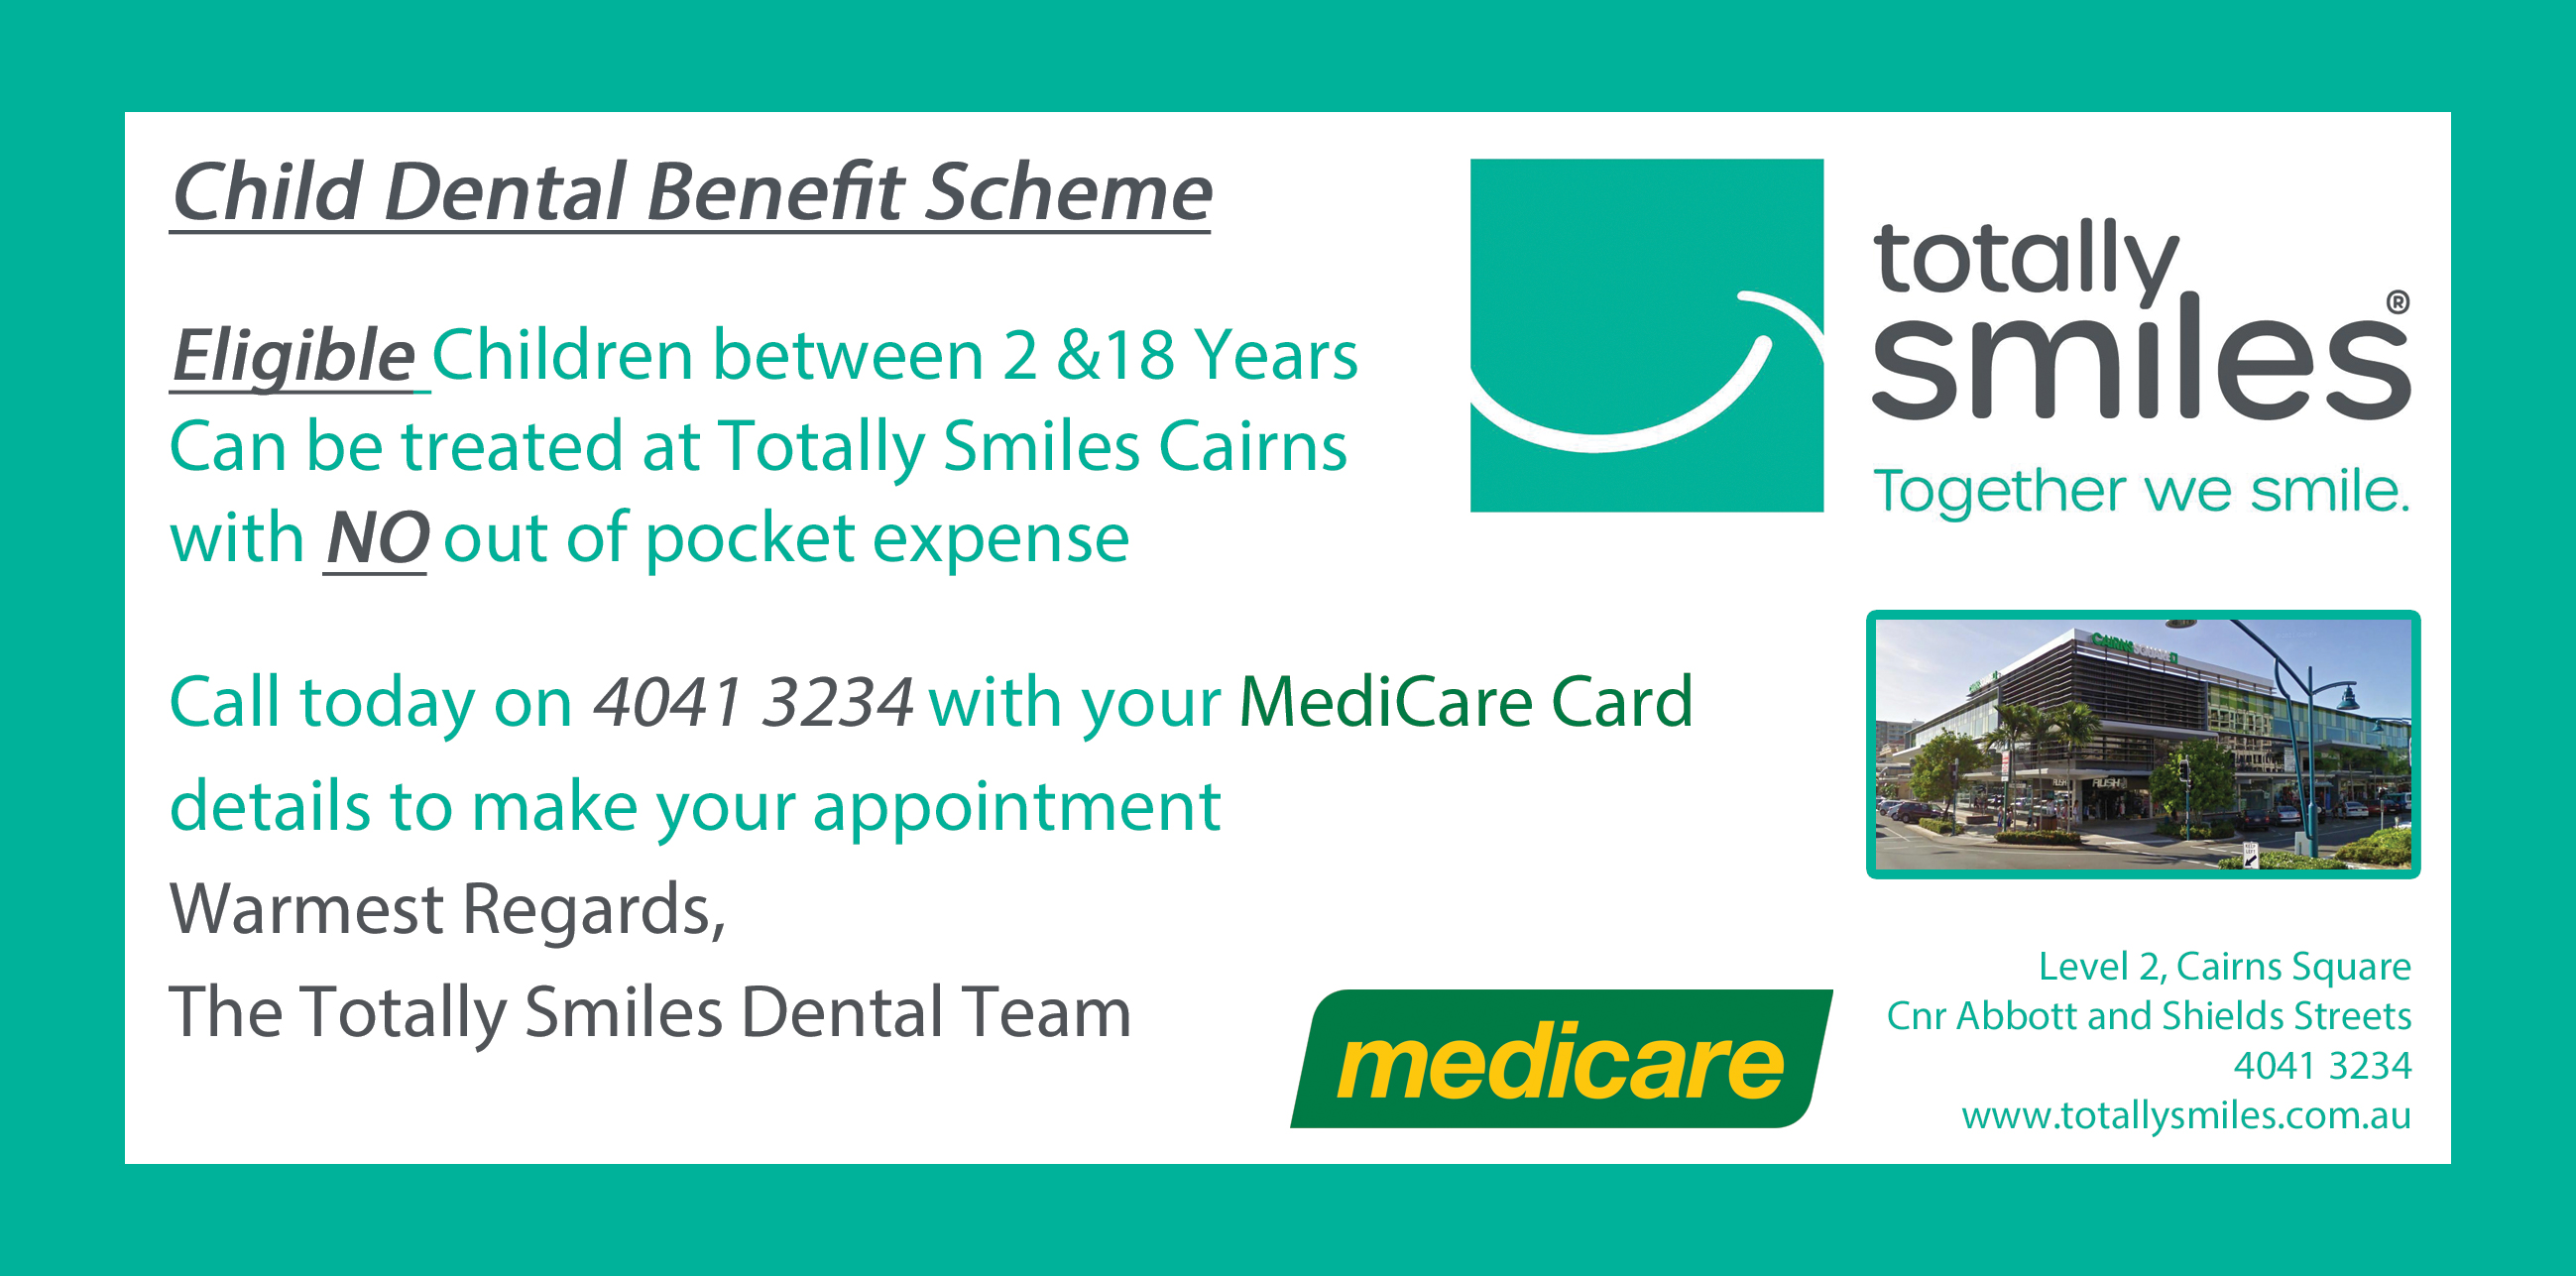 Child Dental Benefits Scheme DL